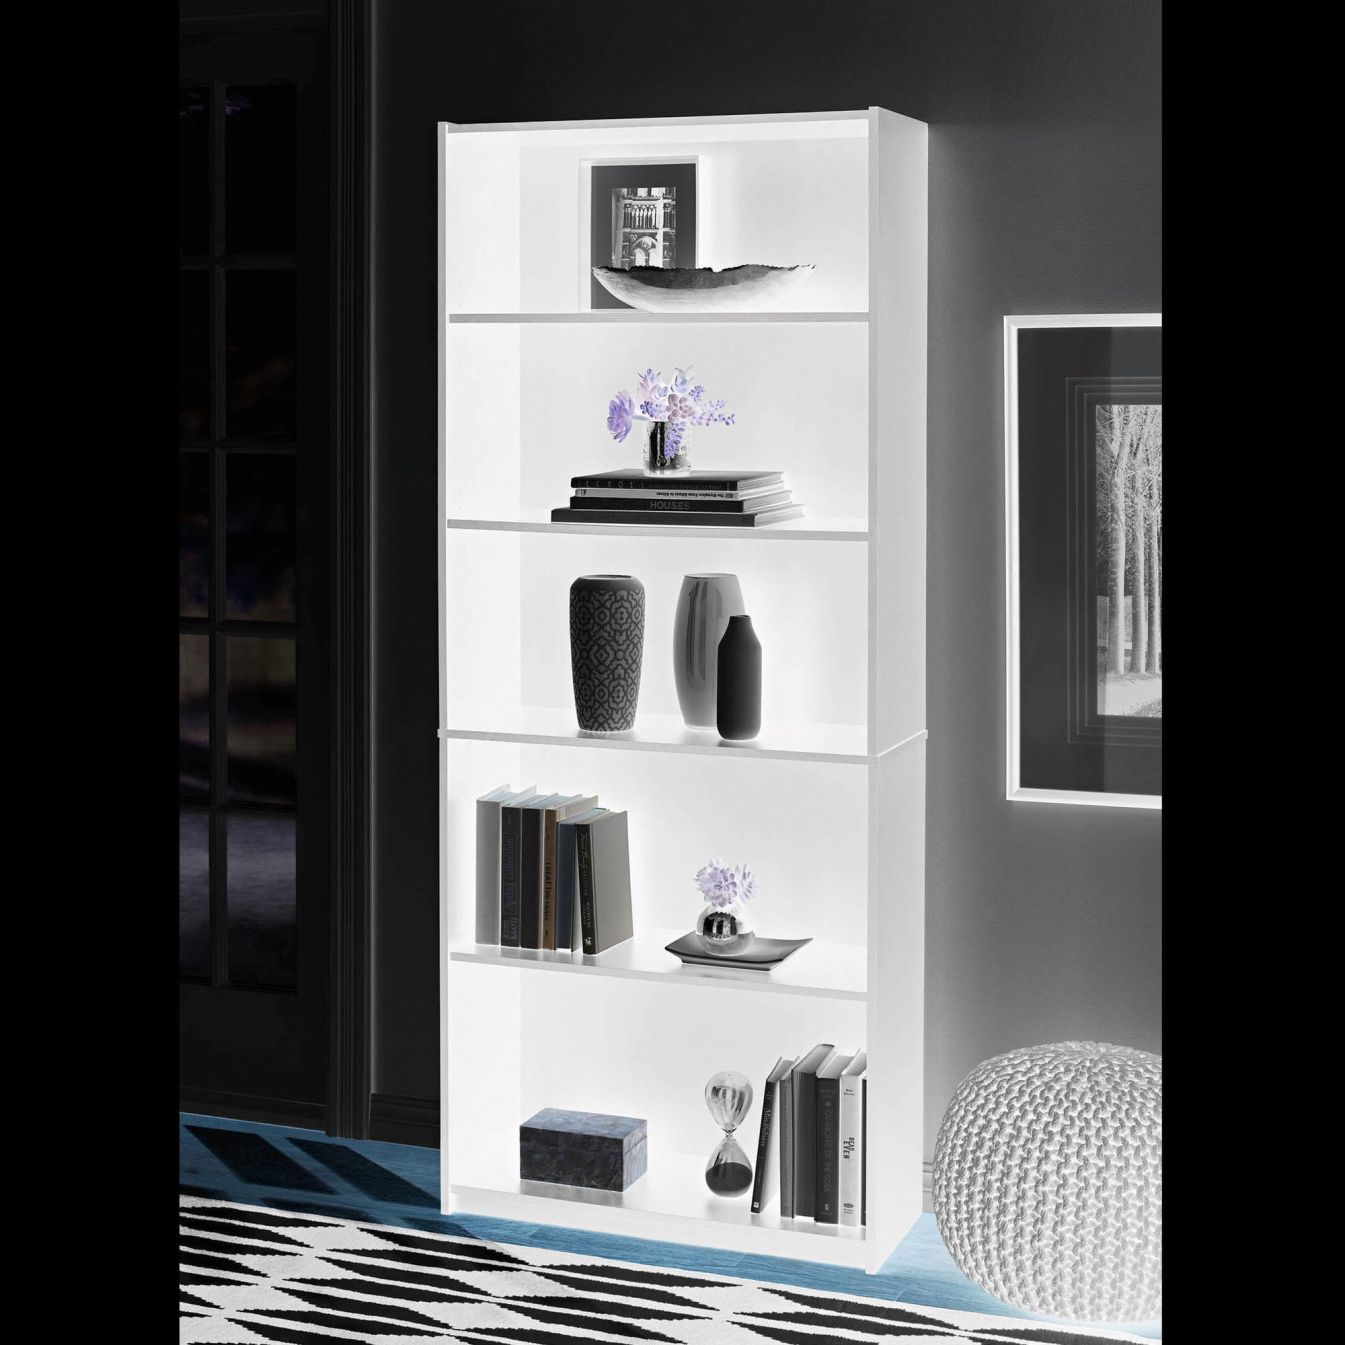 Bookcase 30 Inches Wide Best Bedroom Furniture Check More At Http Fiveinchfloppy